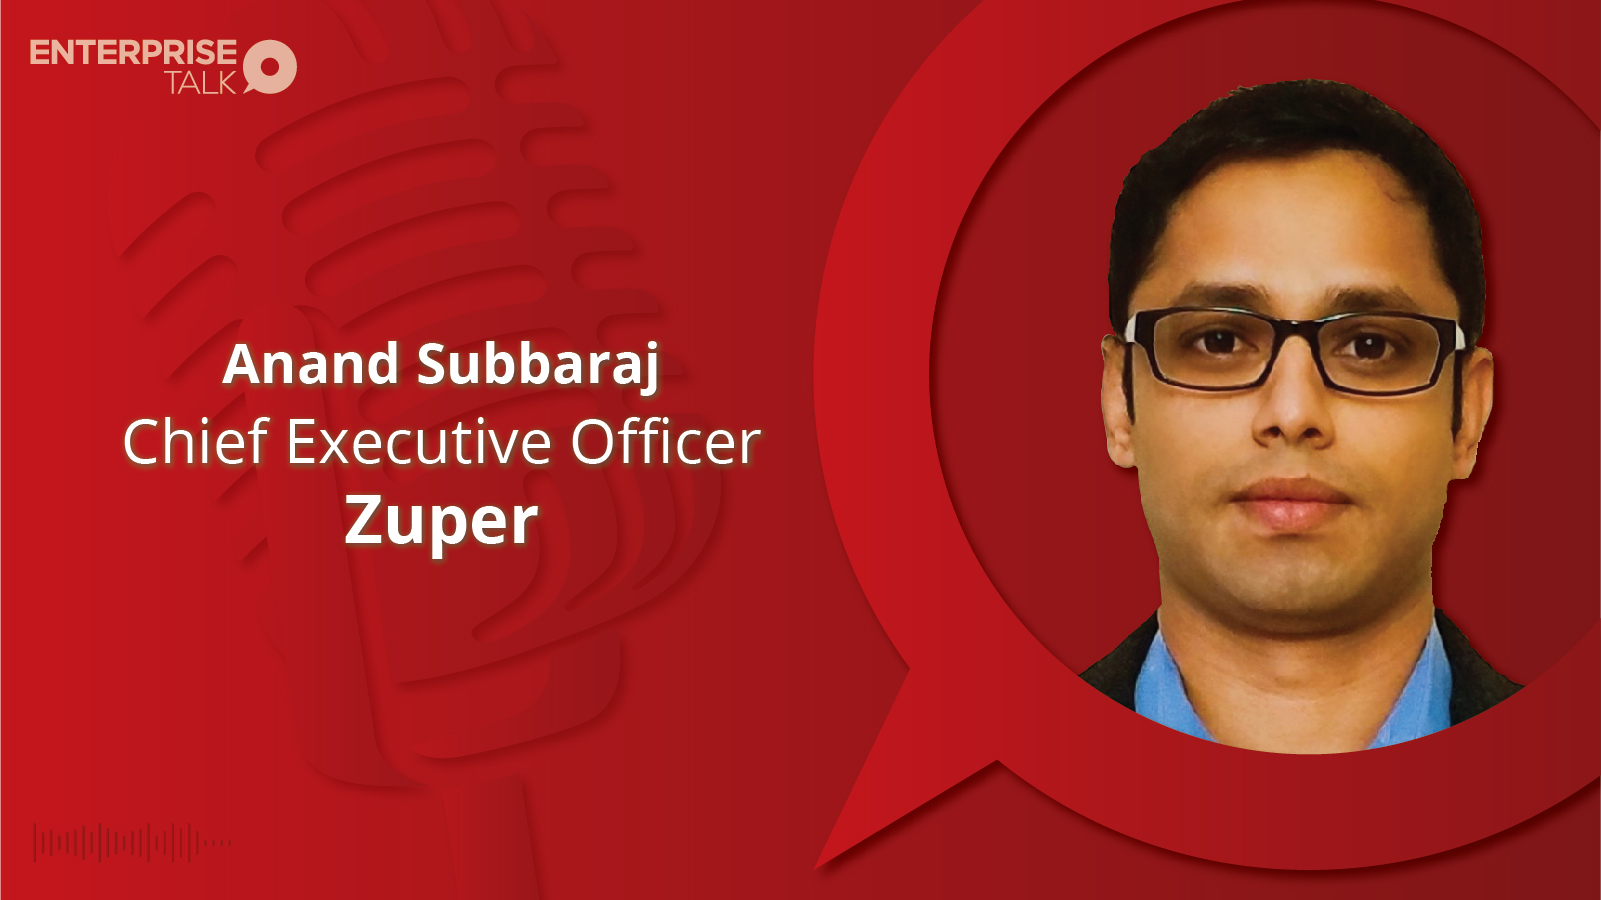 Anand Subbaraj CEO of Zuper a field workforce management software company